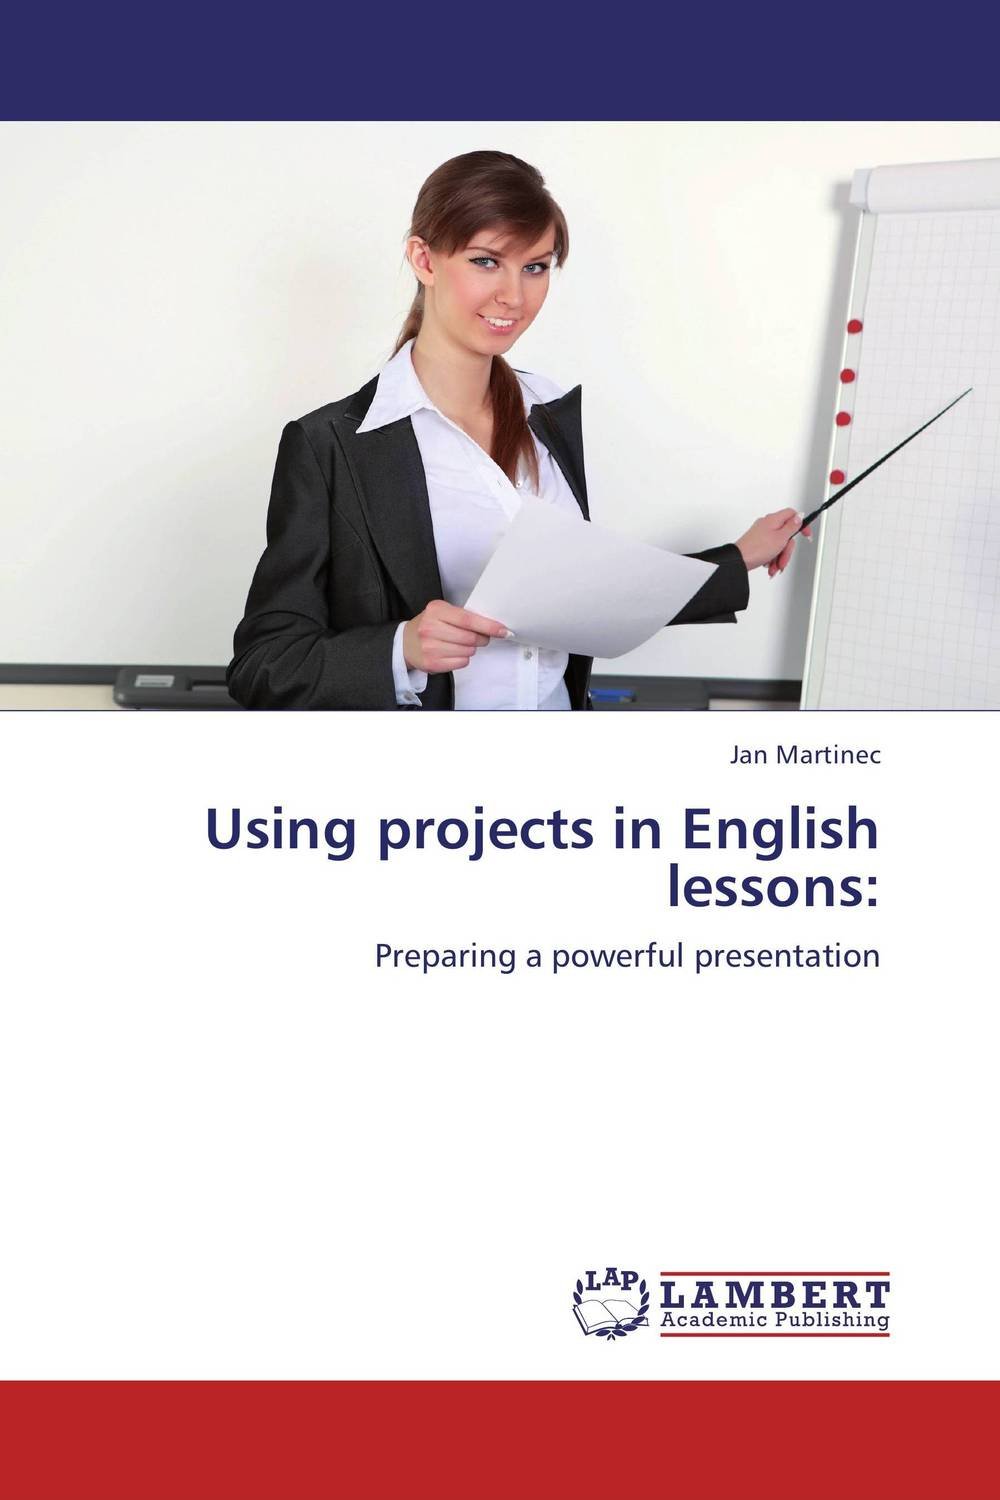 Using projects in English lessons: art projects